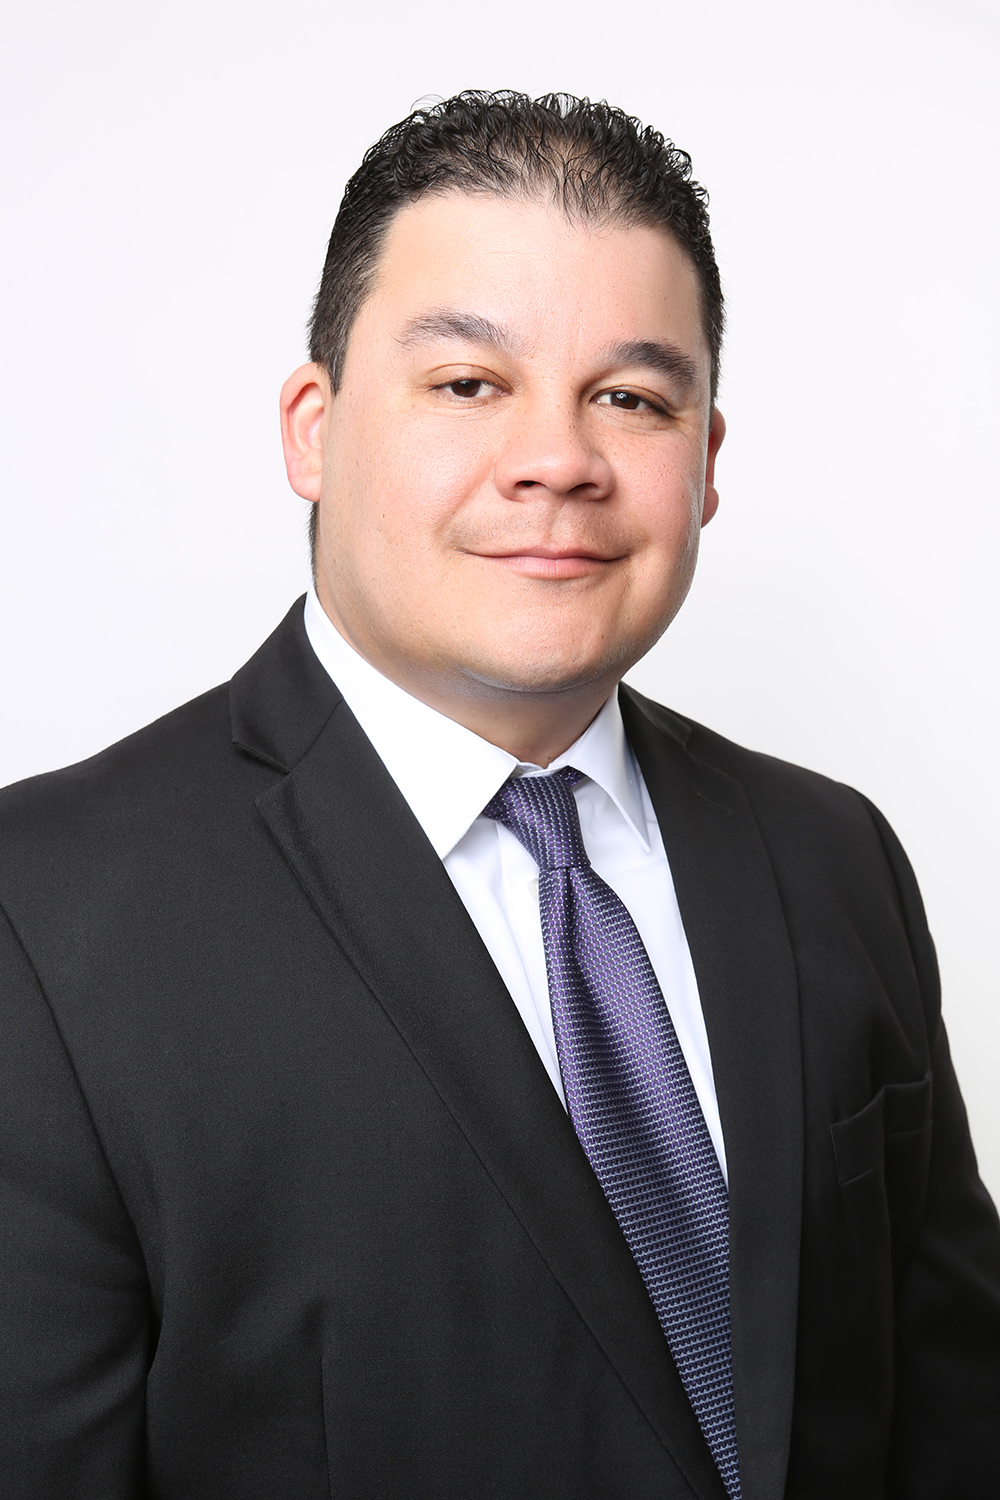 Saul Galvan - Trusted Real Estate Broker